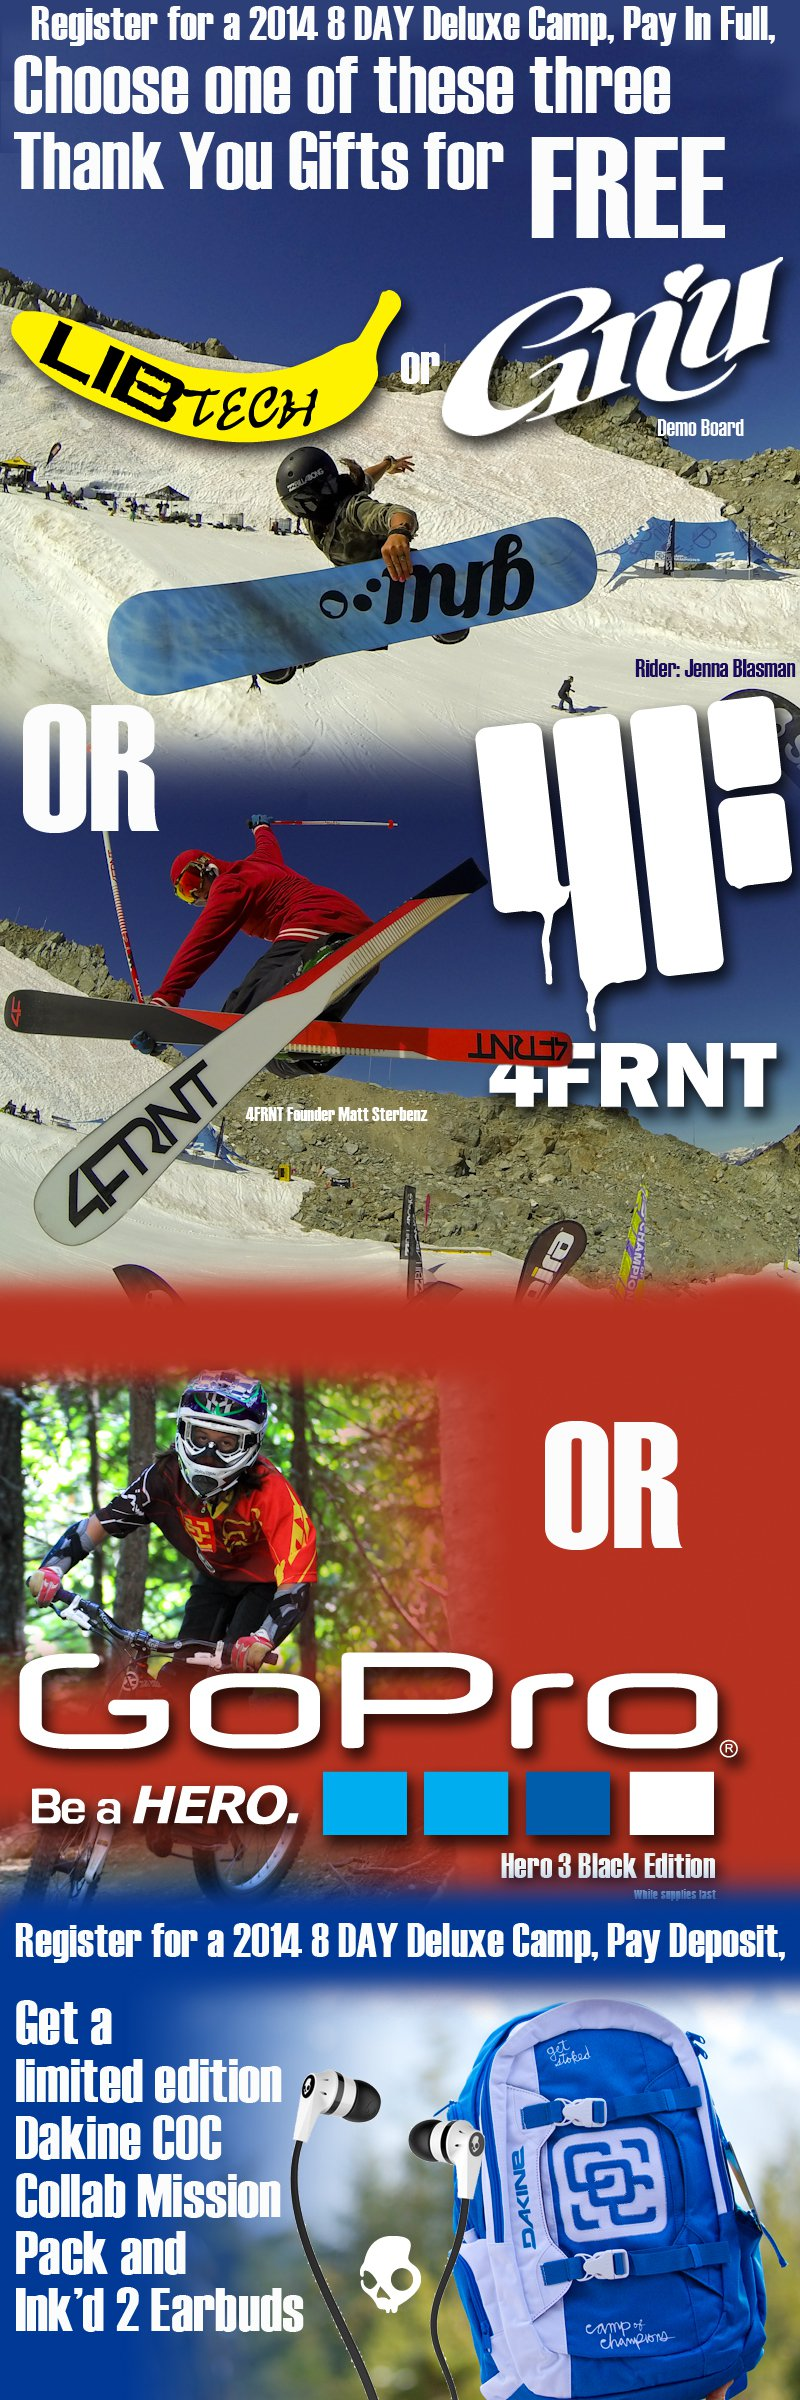 Free Skis When You Register For COC 2014